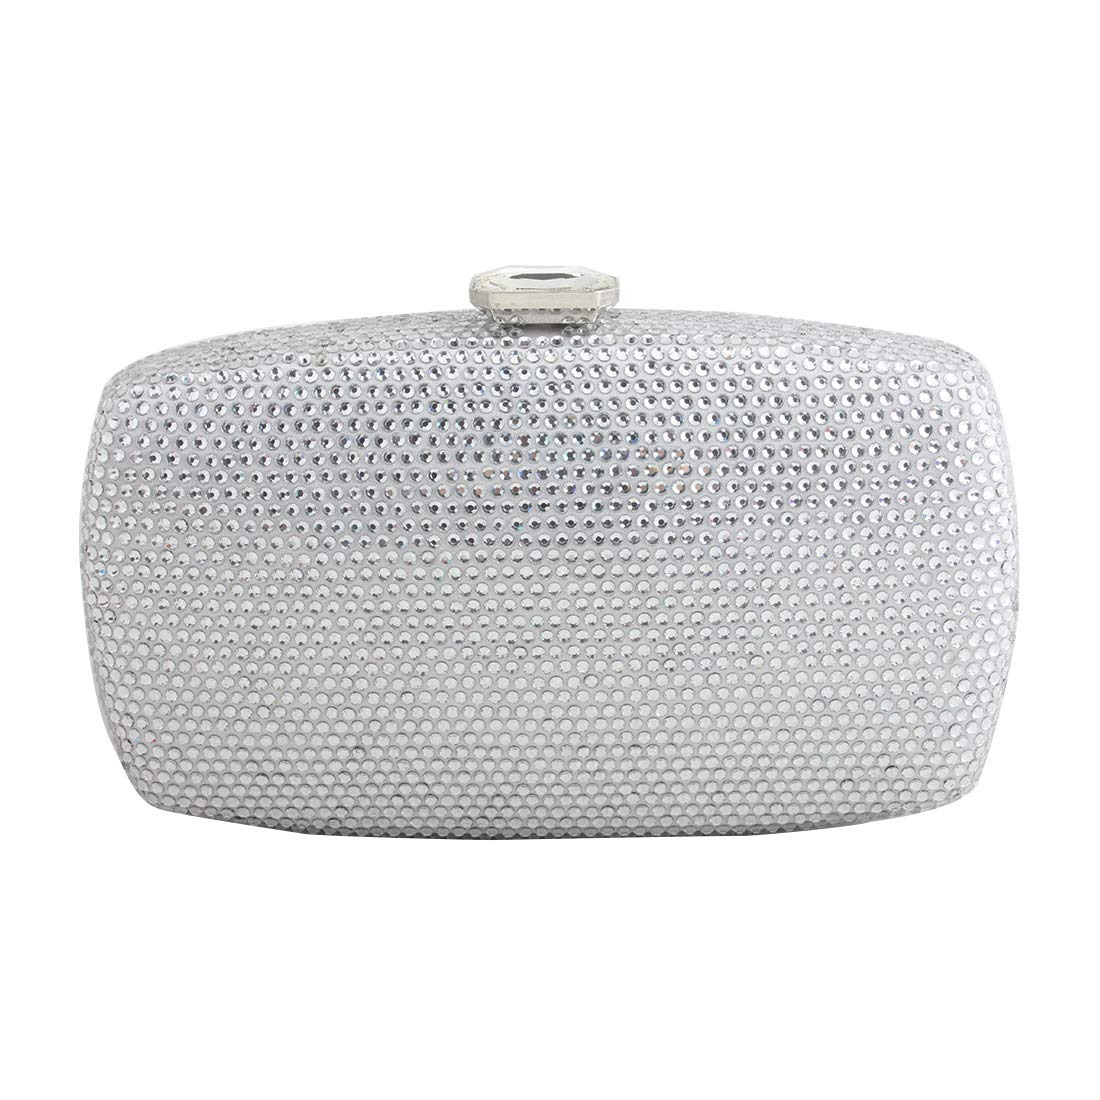 LETODE Sparkling Crystal Evening Clutches Women Handbags Wedding Clutch Bag For Dance Party Purse (SILVER)